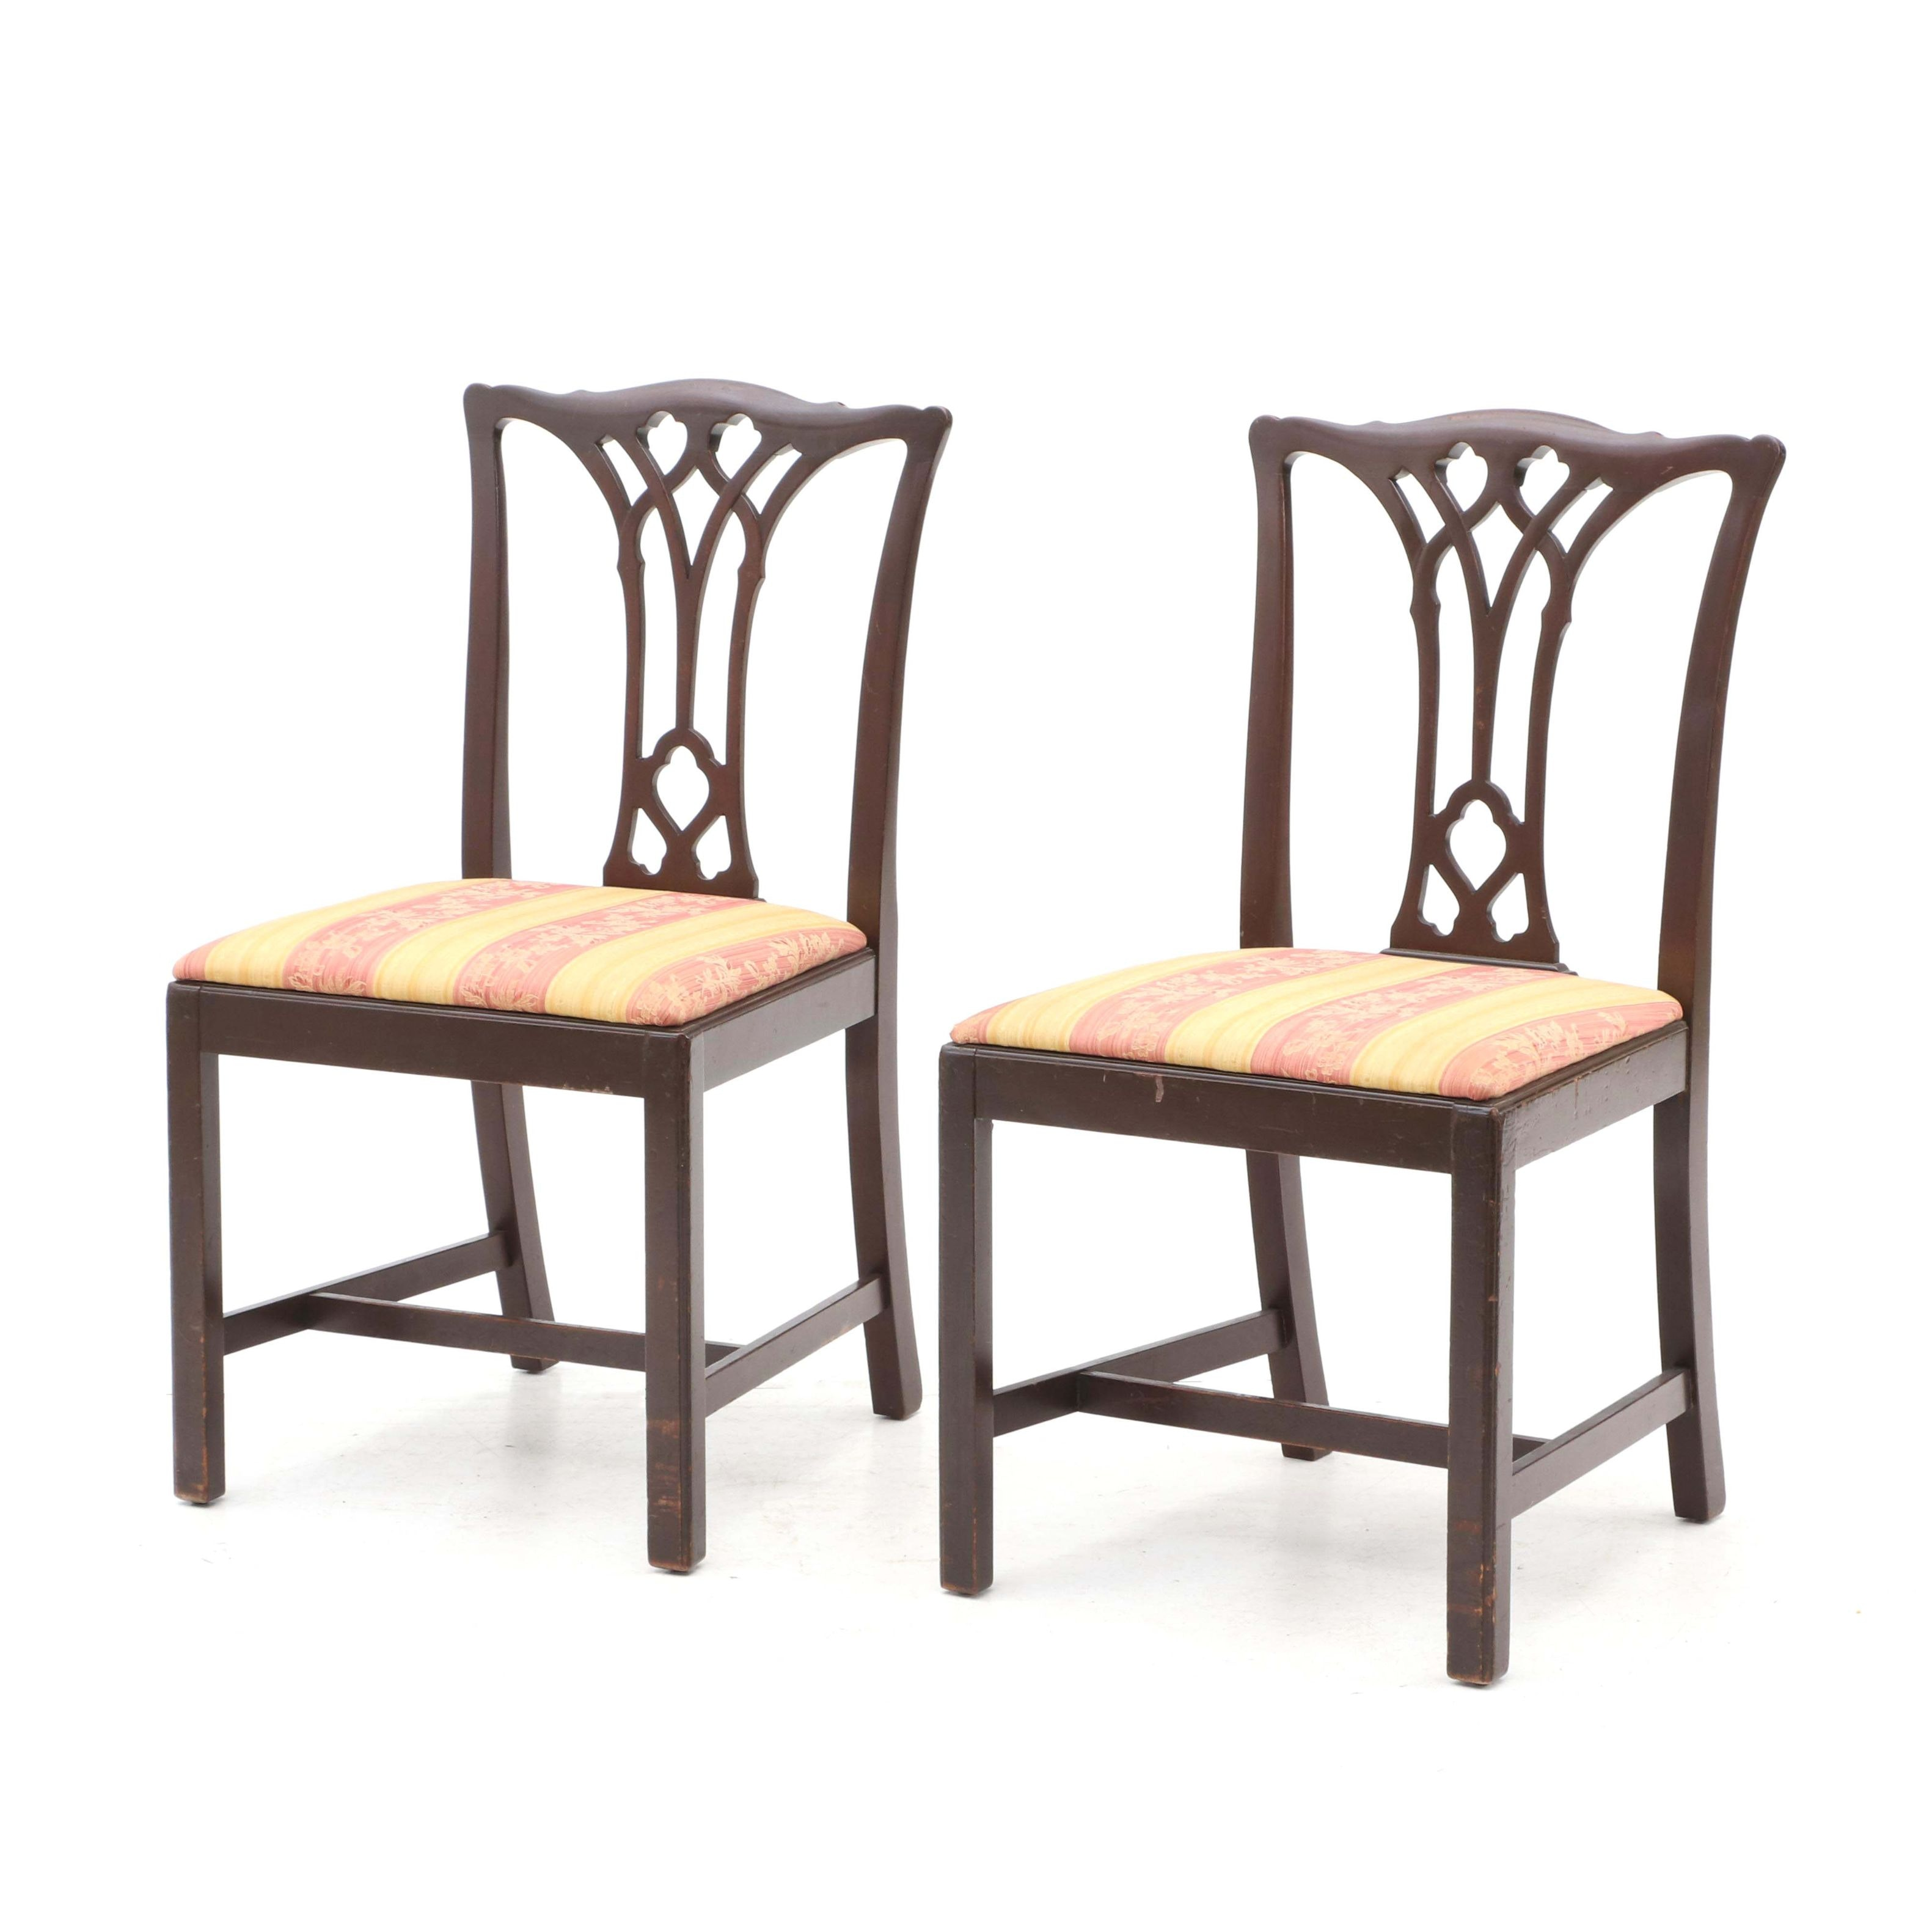 A Pair of Federal Style Side Chairs, 20th Century